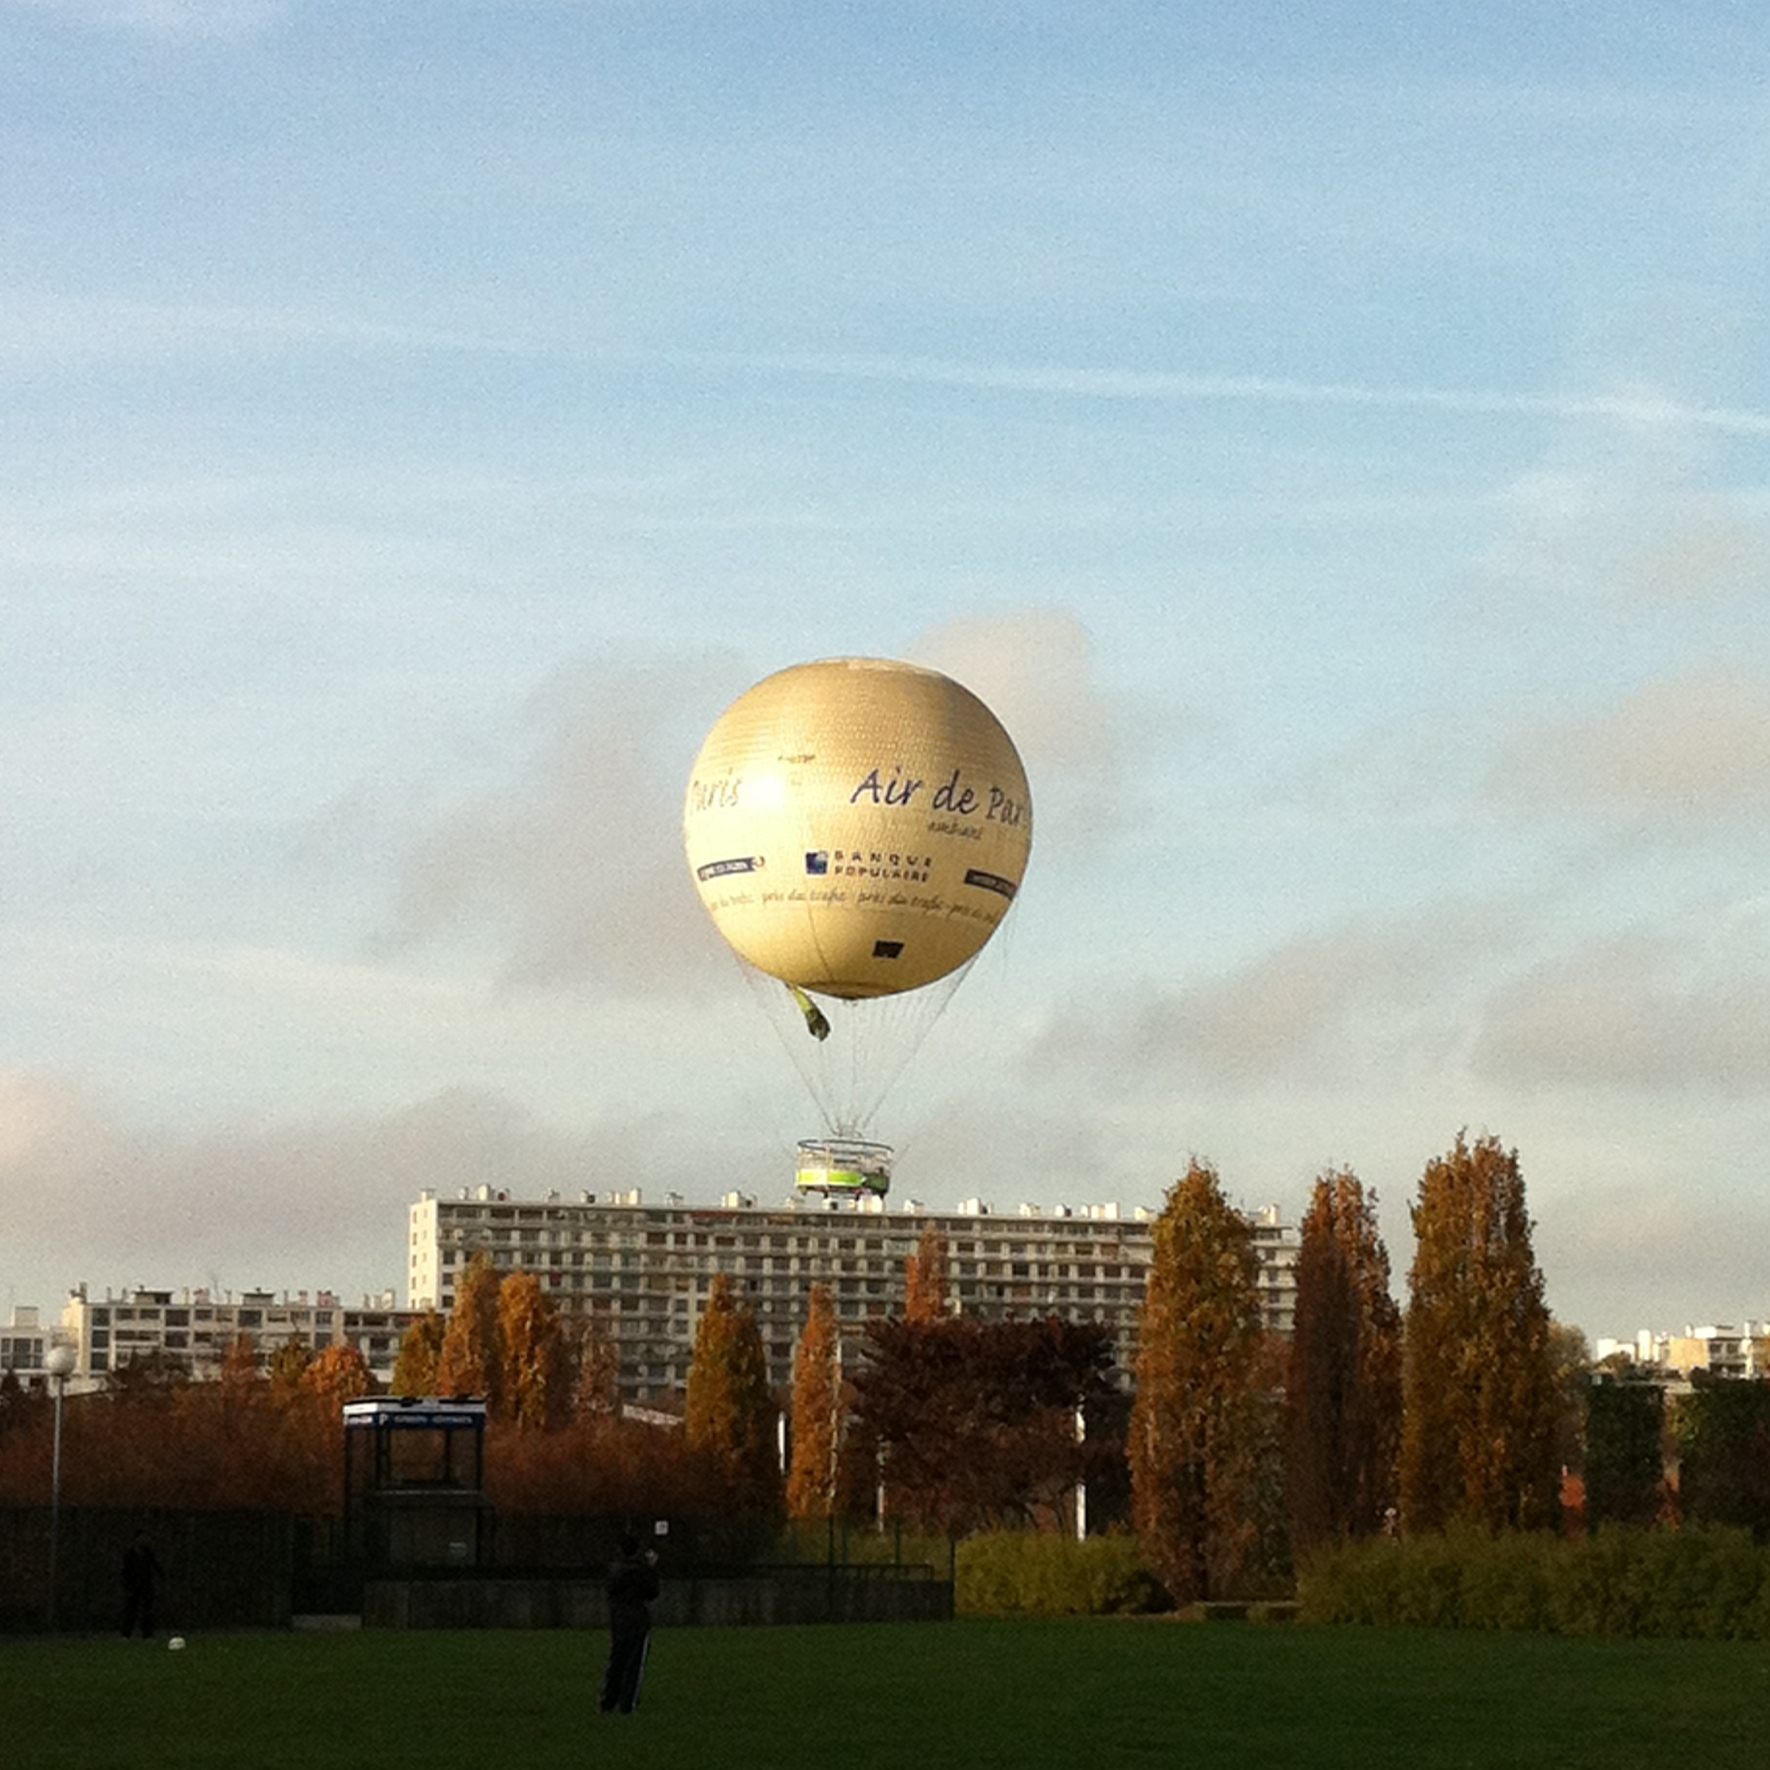 Up, up and away … – je parle américain